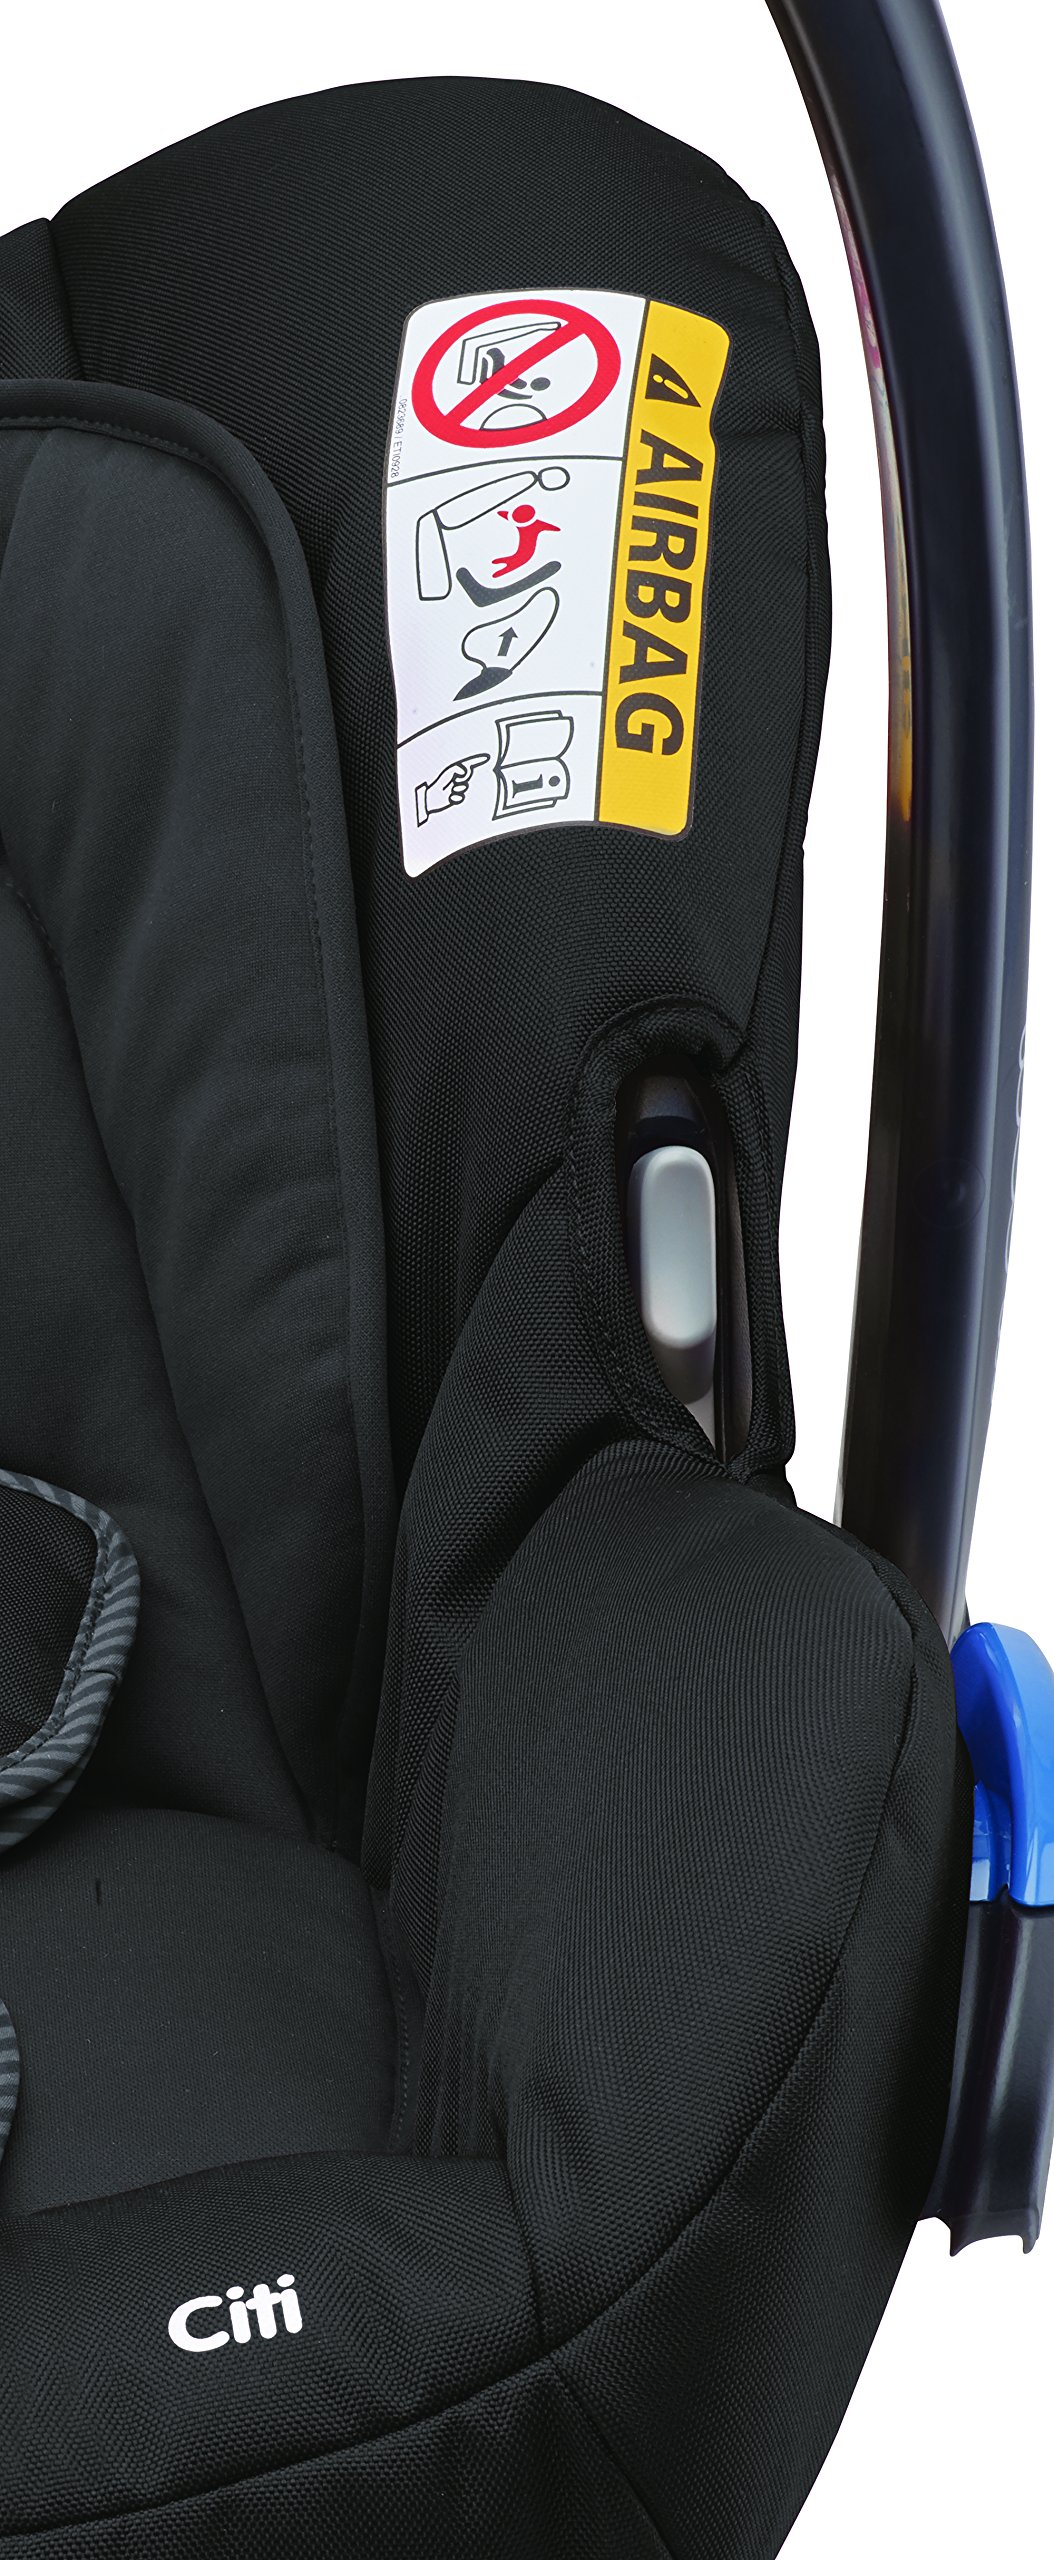 Maxi-Cosi Kinderautositz Citi Black Raven Maxi-Cosi Side protection system, guarantees optimal protection in the event of a side impact Lightweight, light weight and ergonomically shaped safety bar for use as carrying handle Practical travel system 9